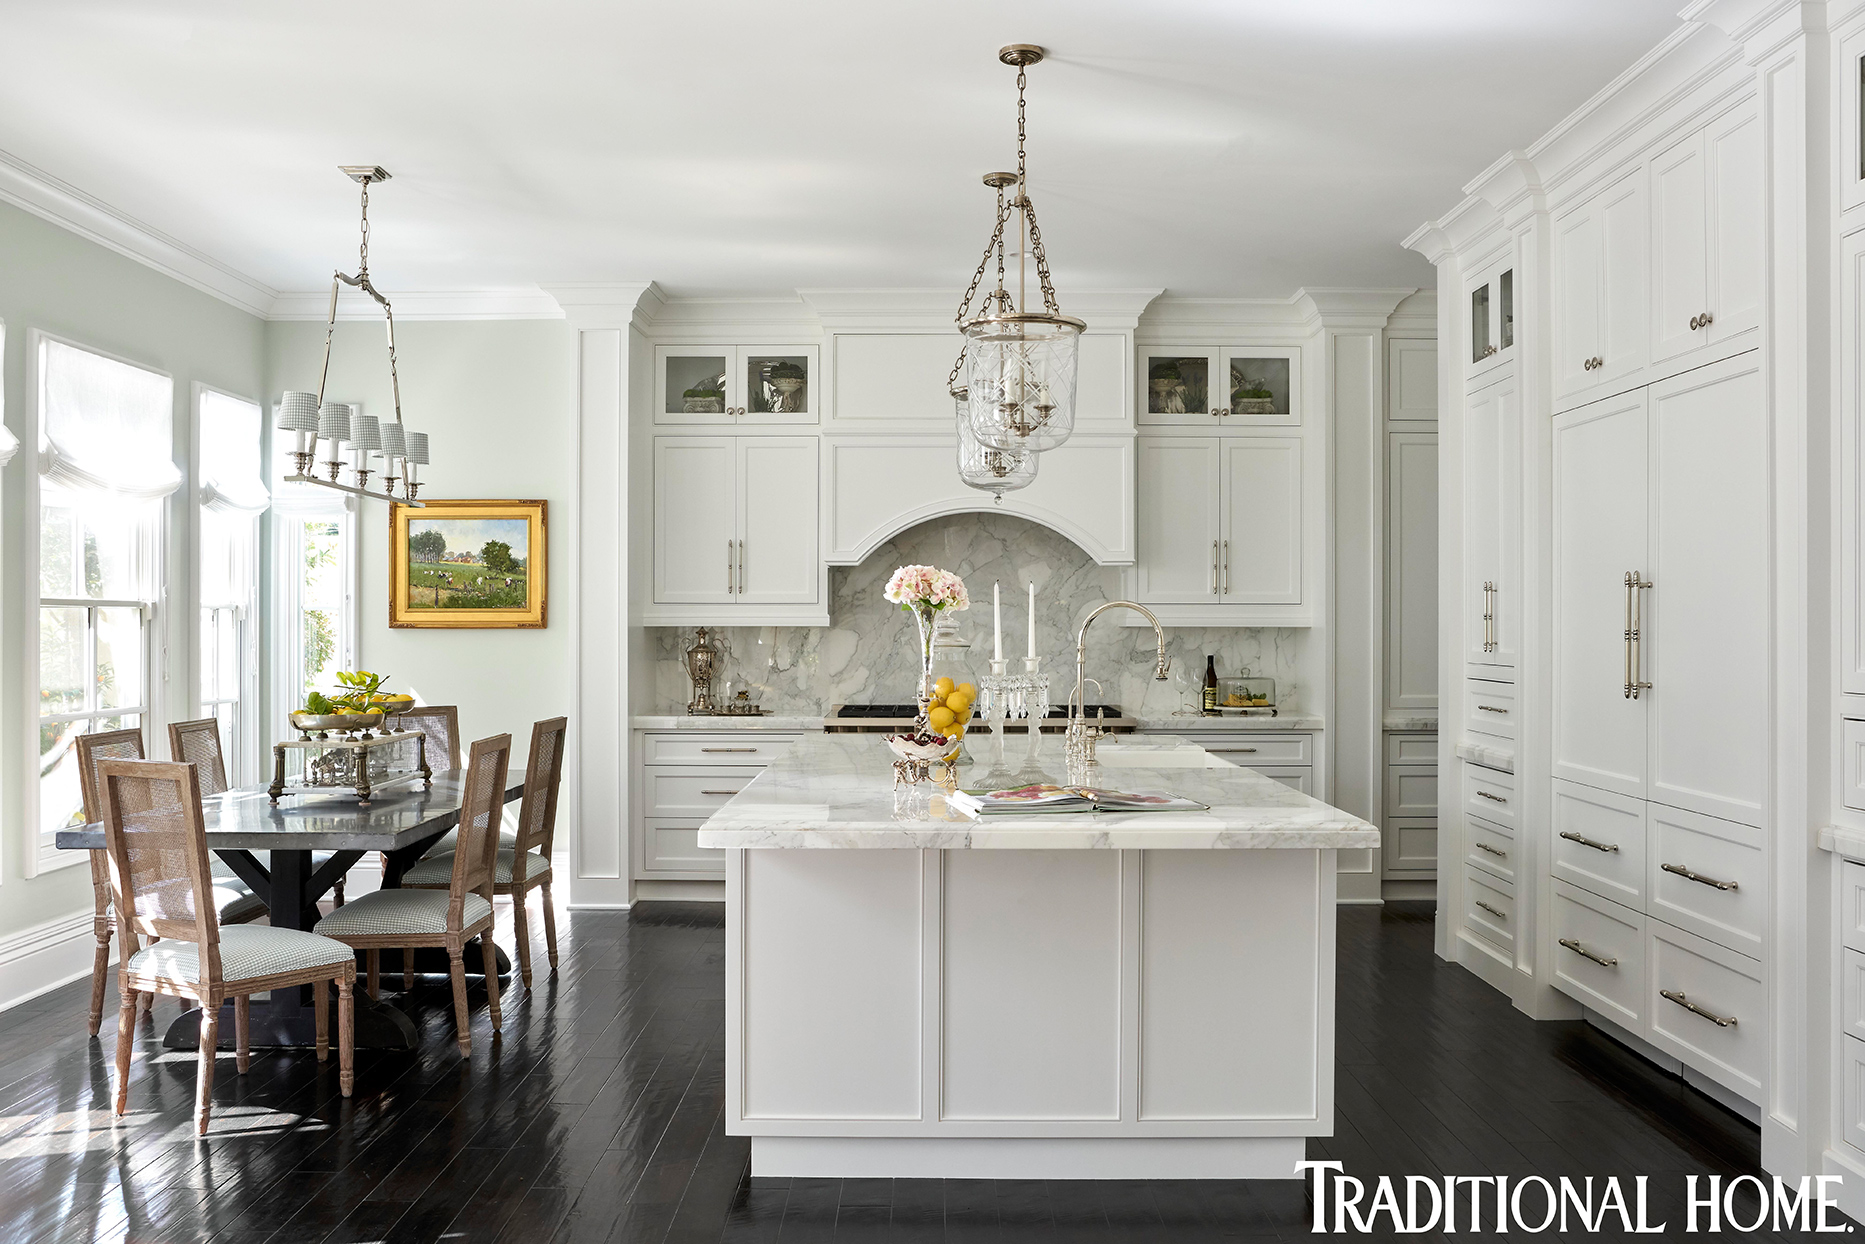 white kitchen with hanging lights and dark wood floors